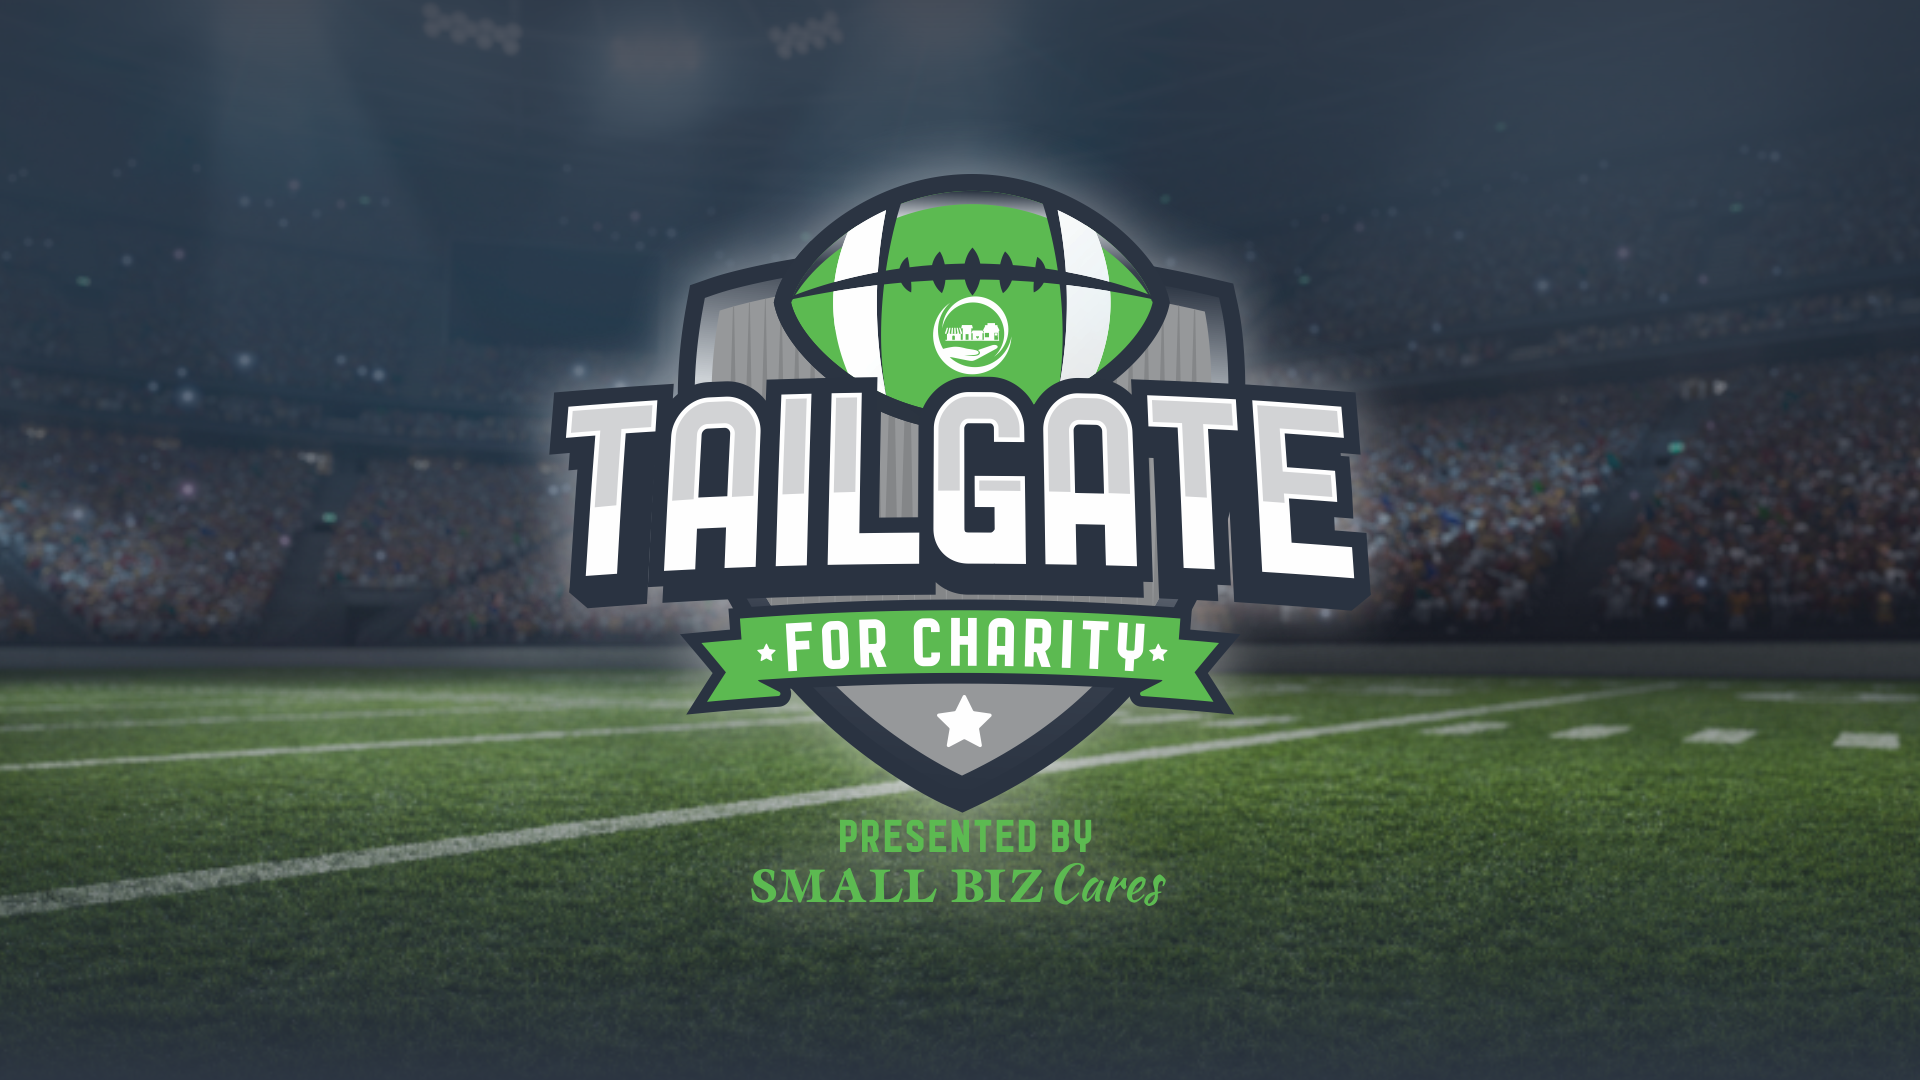 Tailgate for Charity to support She Has a Name